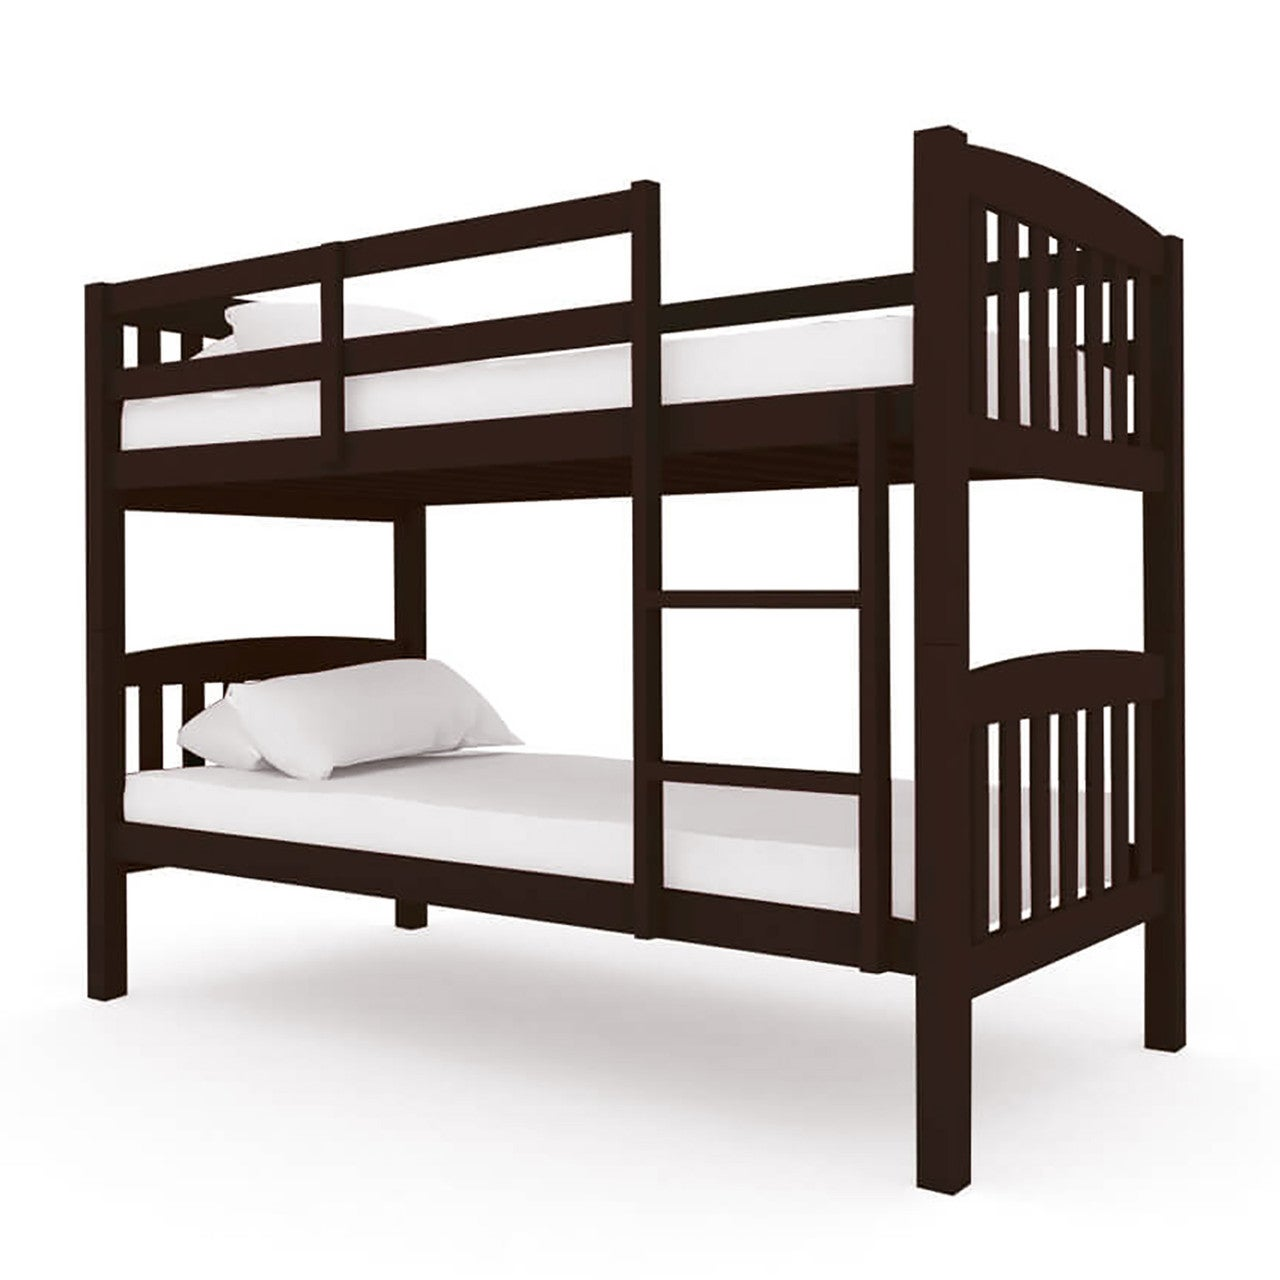 Dante 2-in-1 Solid Pine Timber Bunk Bed Cappuccino